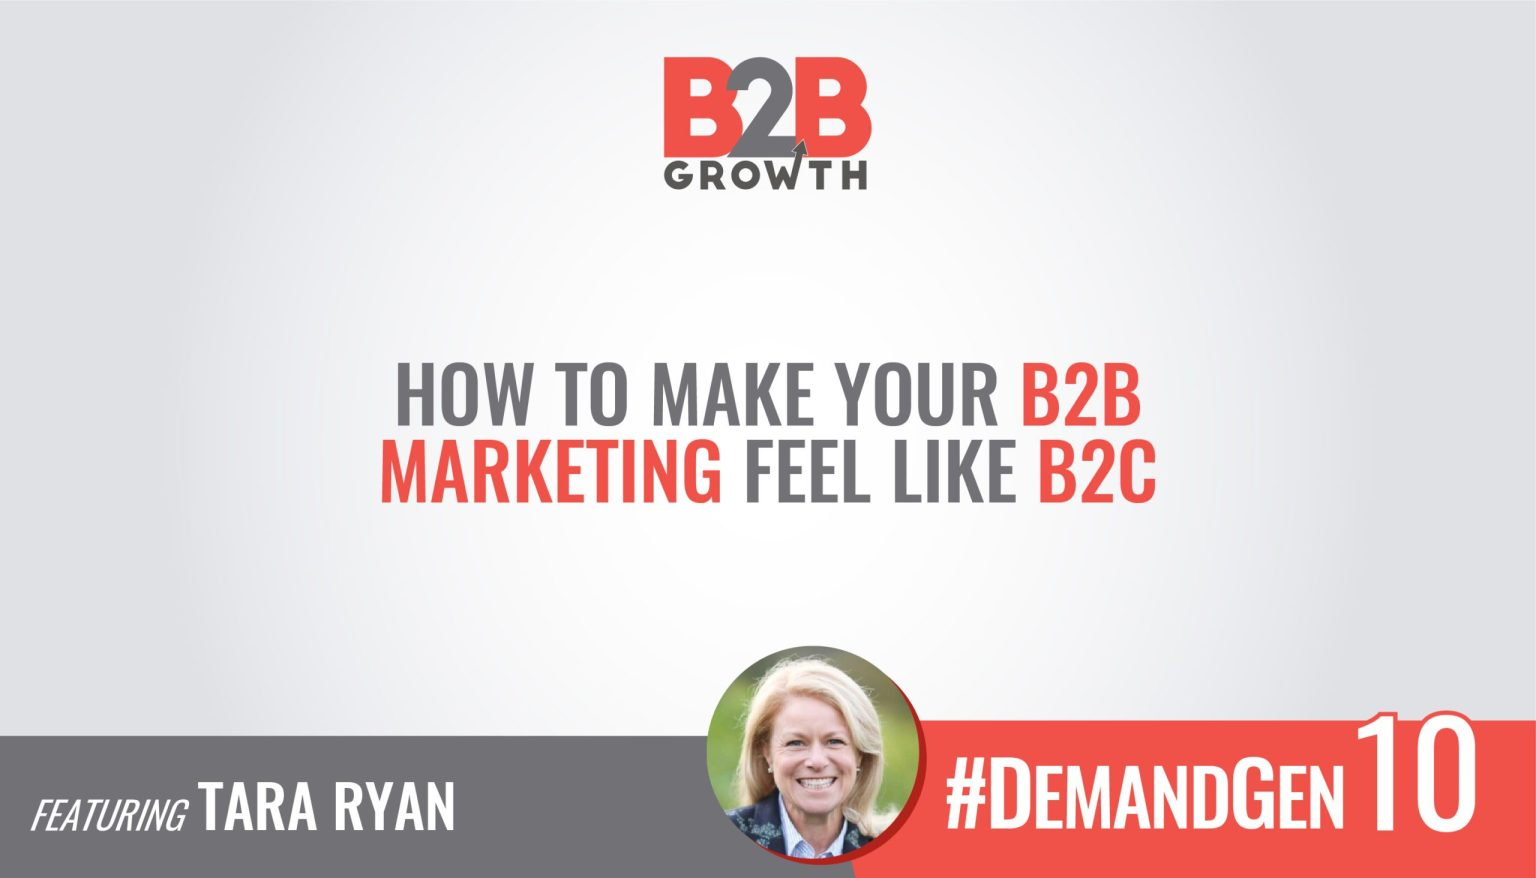 How To Make Your B2B Marketing Feel Like B2C